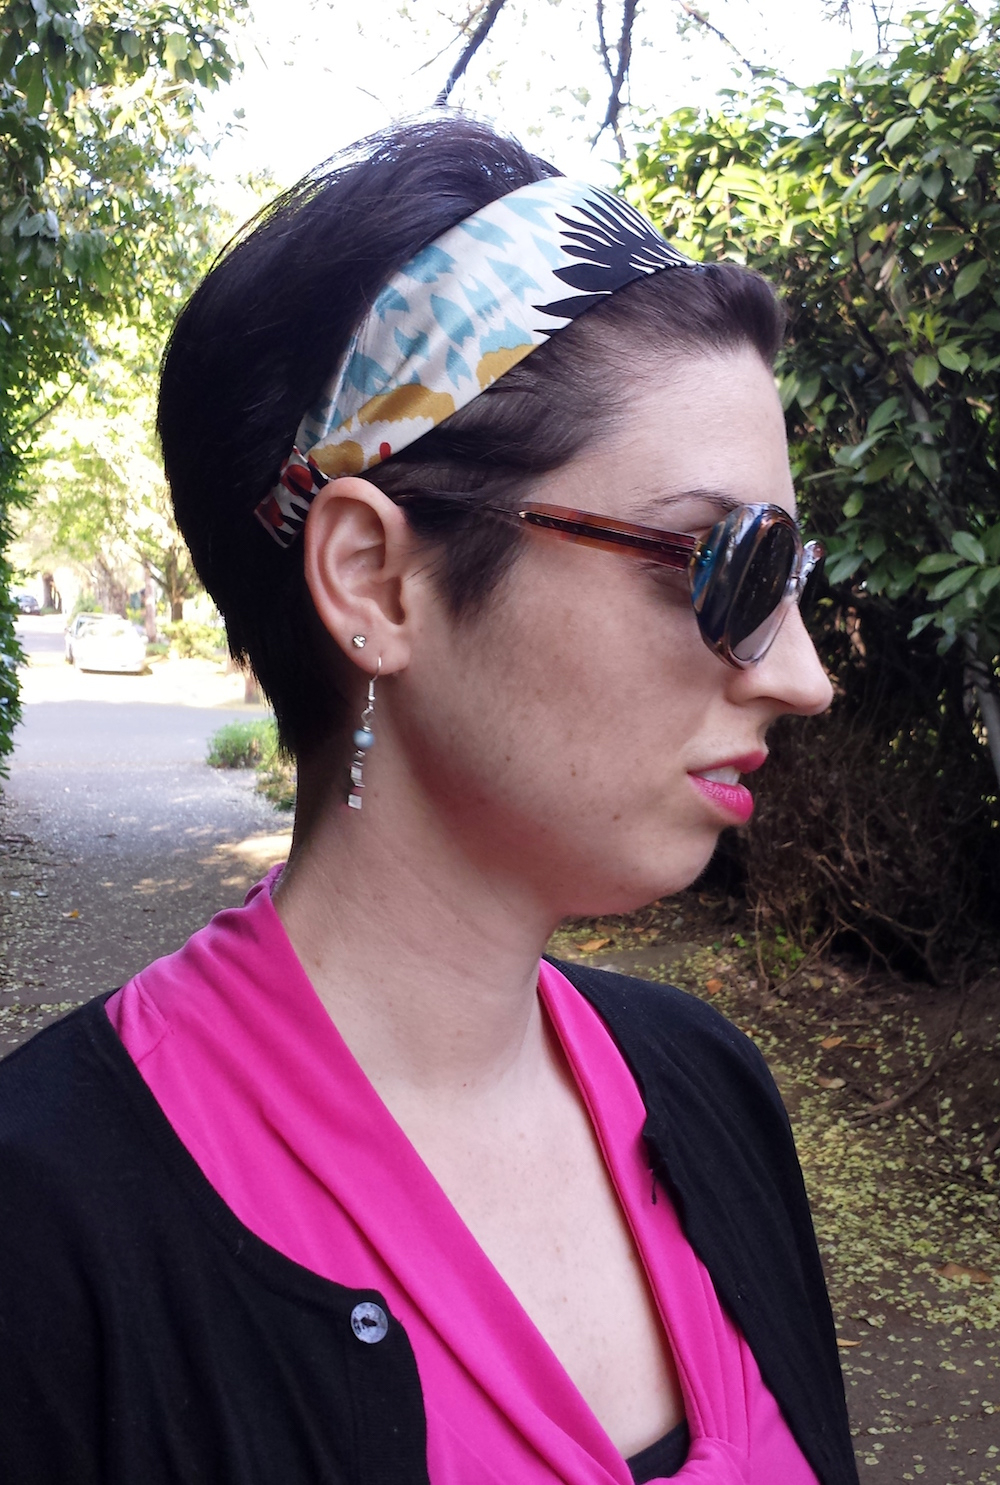 Wide Silk Headband With Short Hair | Pink + Black + Denim Trousers Pertaining To Short Hairstyles With Headbands (View 15 of 25)